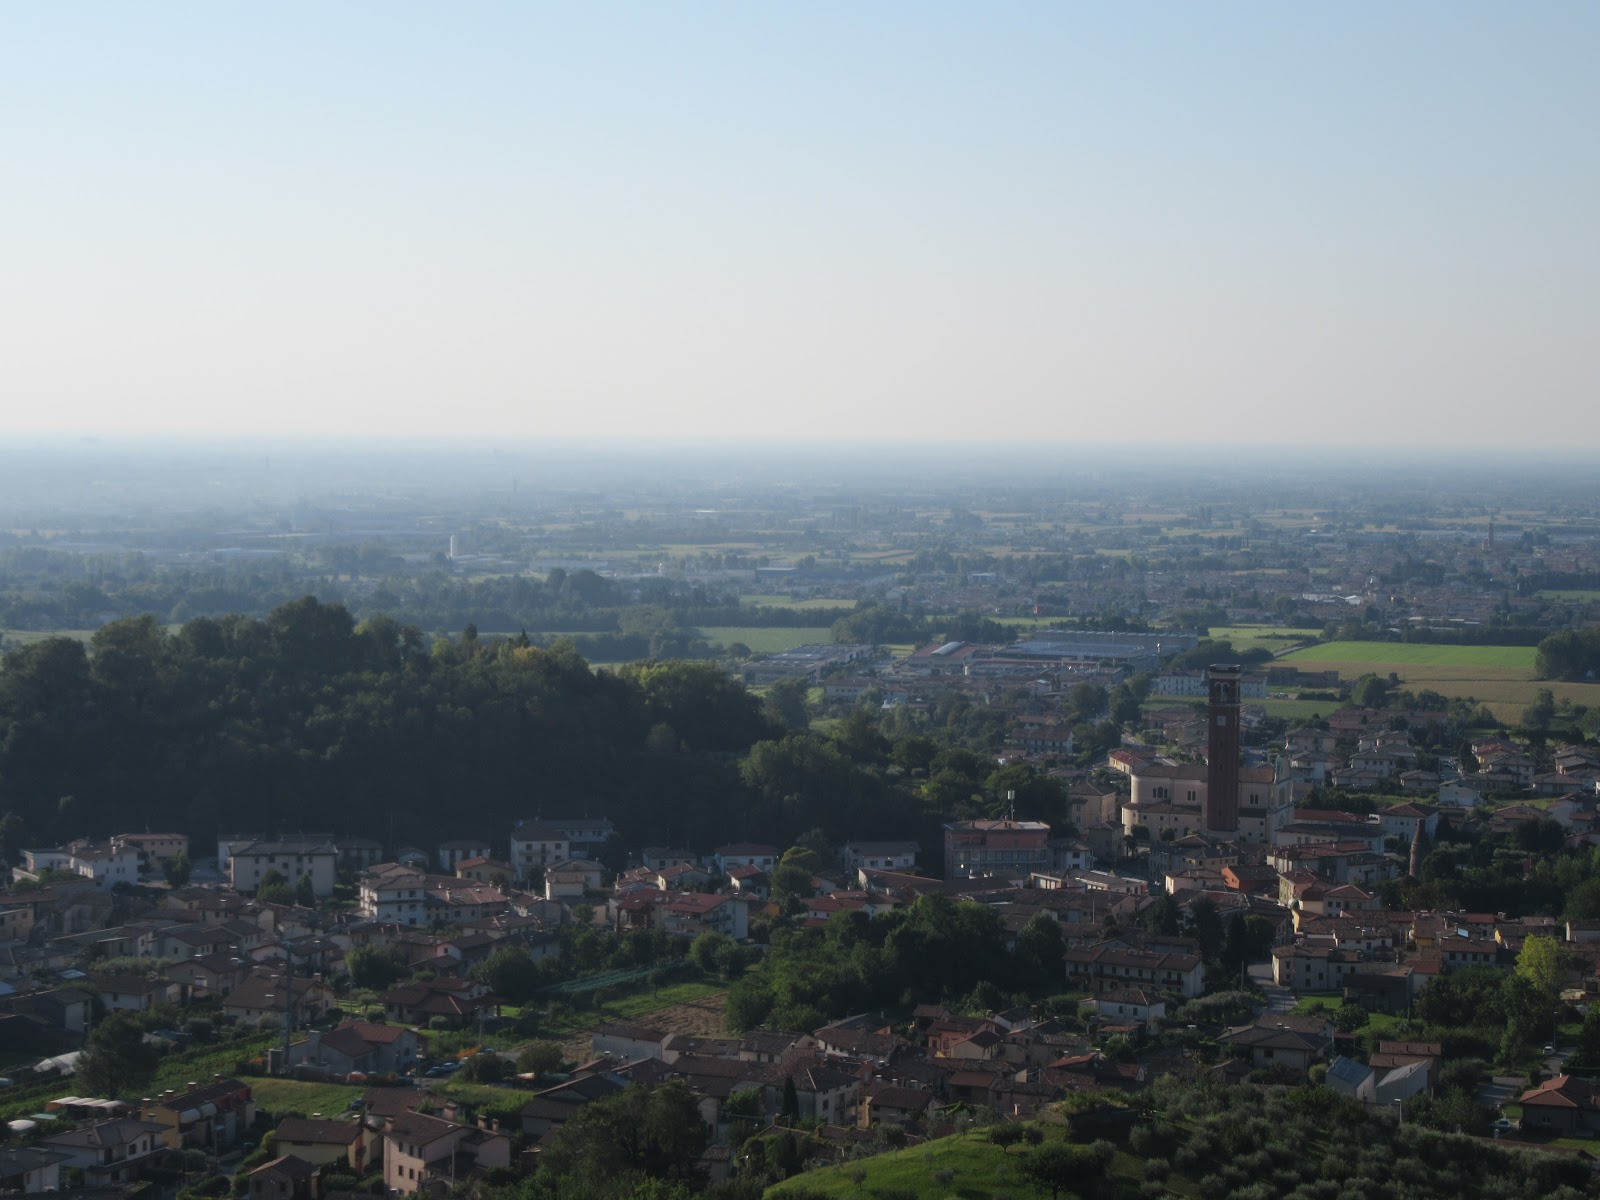 Climbing Monte Grappa from Romano d'Ezzilino by bike - view of Romano d'Ezzilino